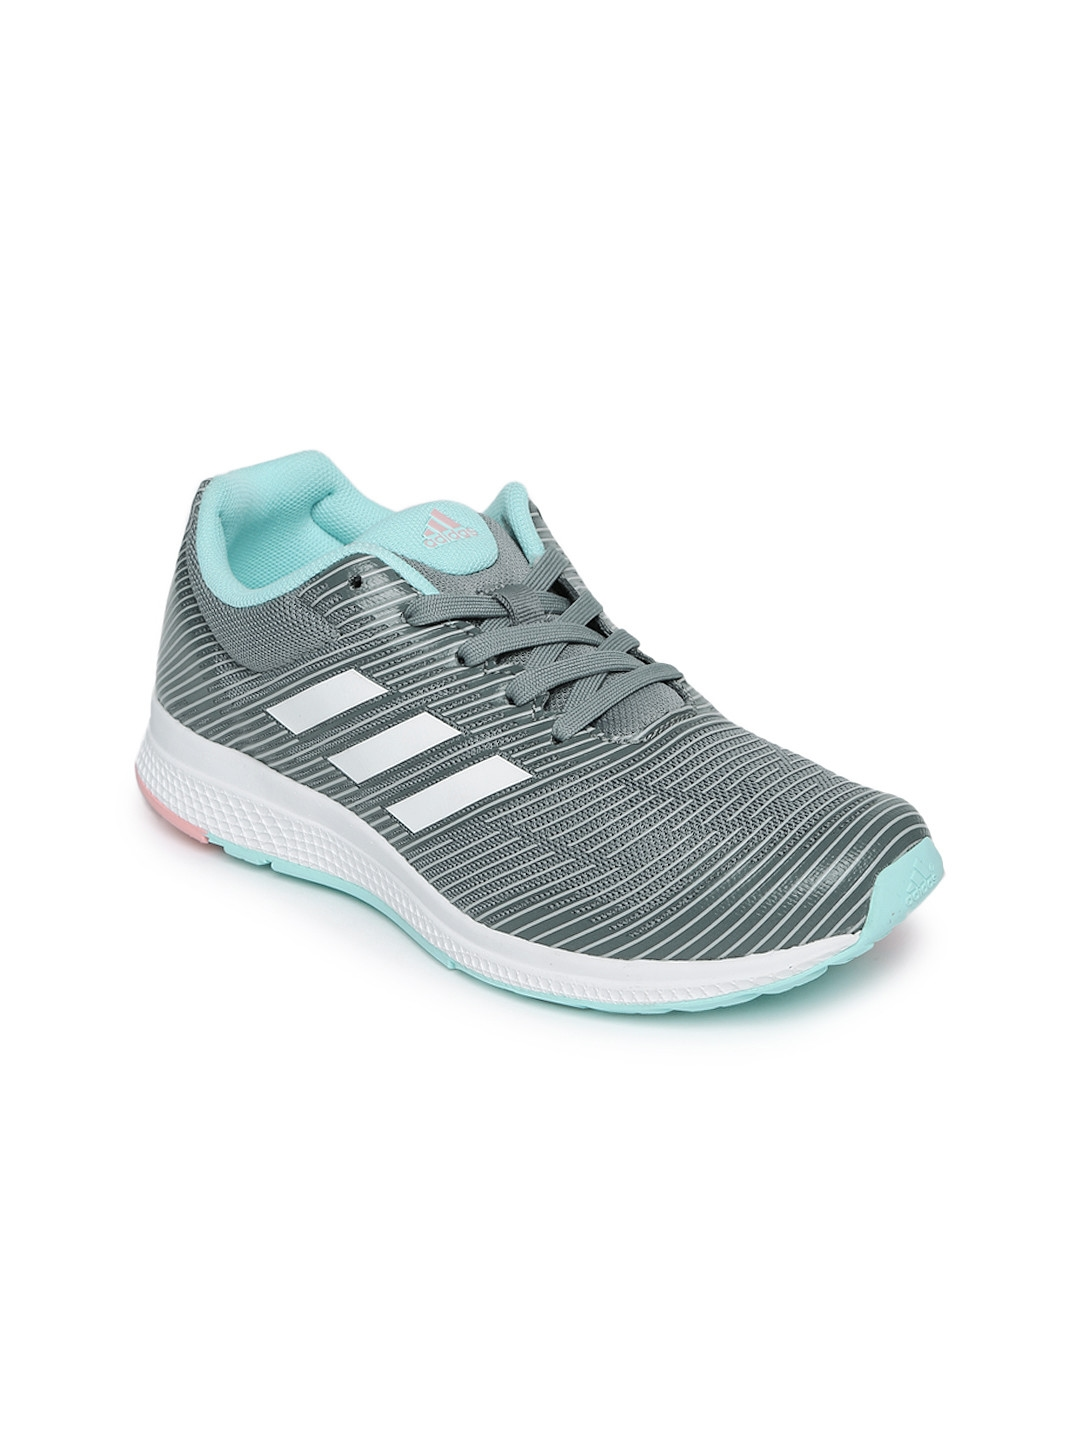 a4a41fc63 Buy ADIDAS Kids Grey Mana Bounce 2 J Running Shoes - Sports Shoes ...